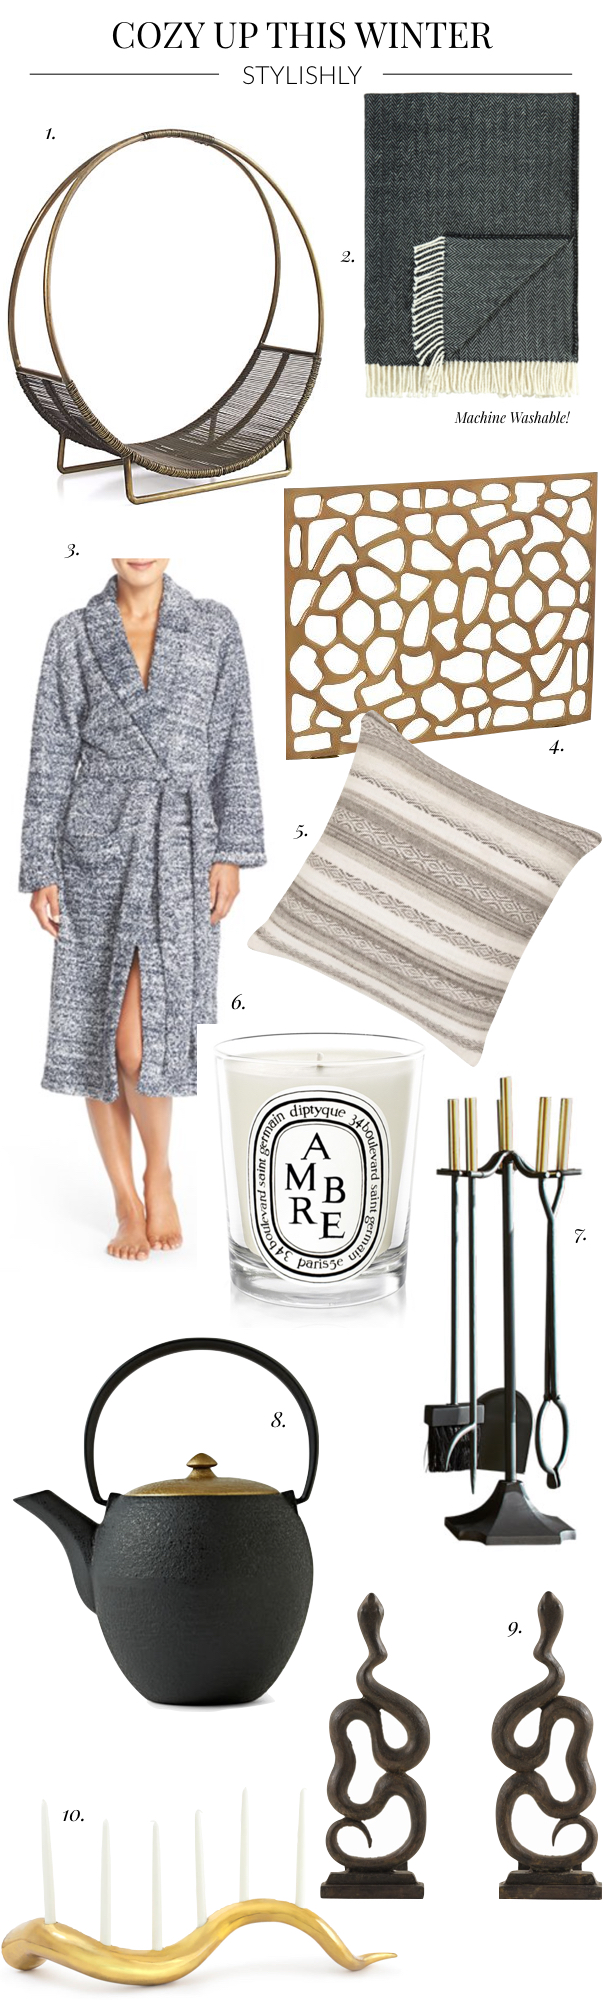 cozy up this winter stylishly